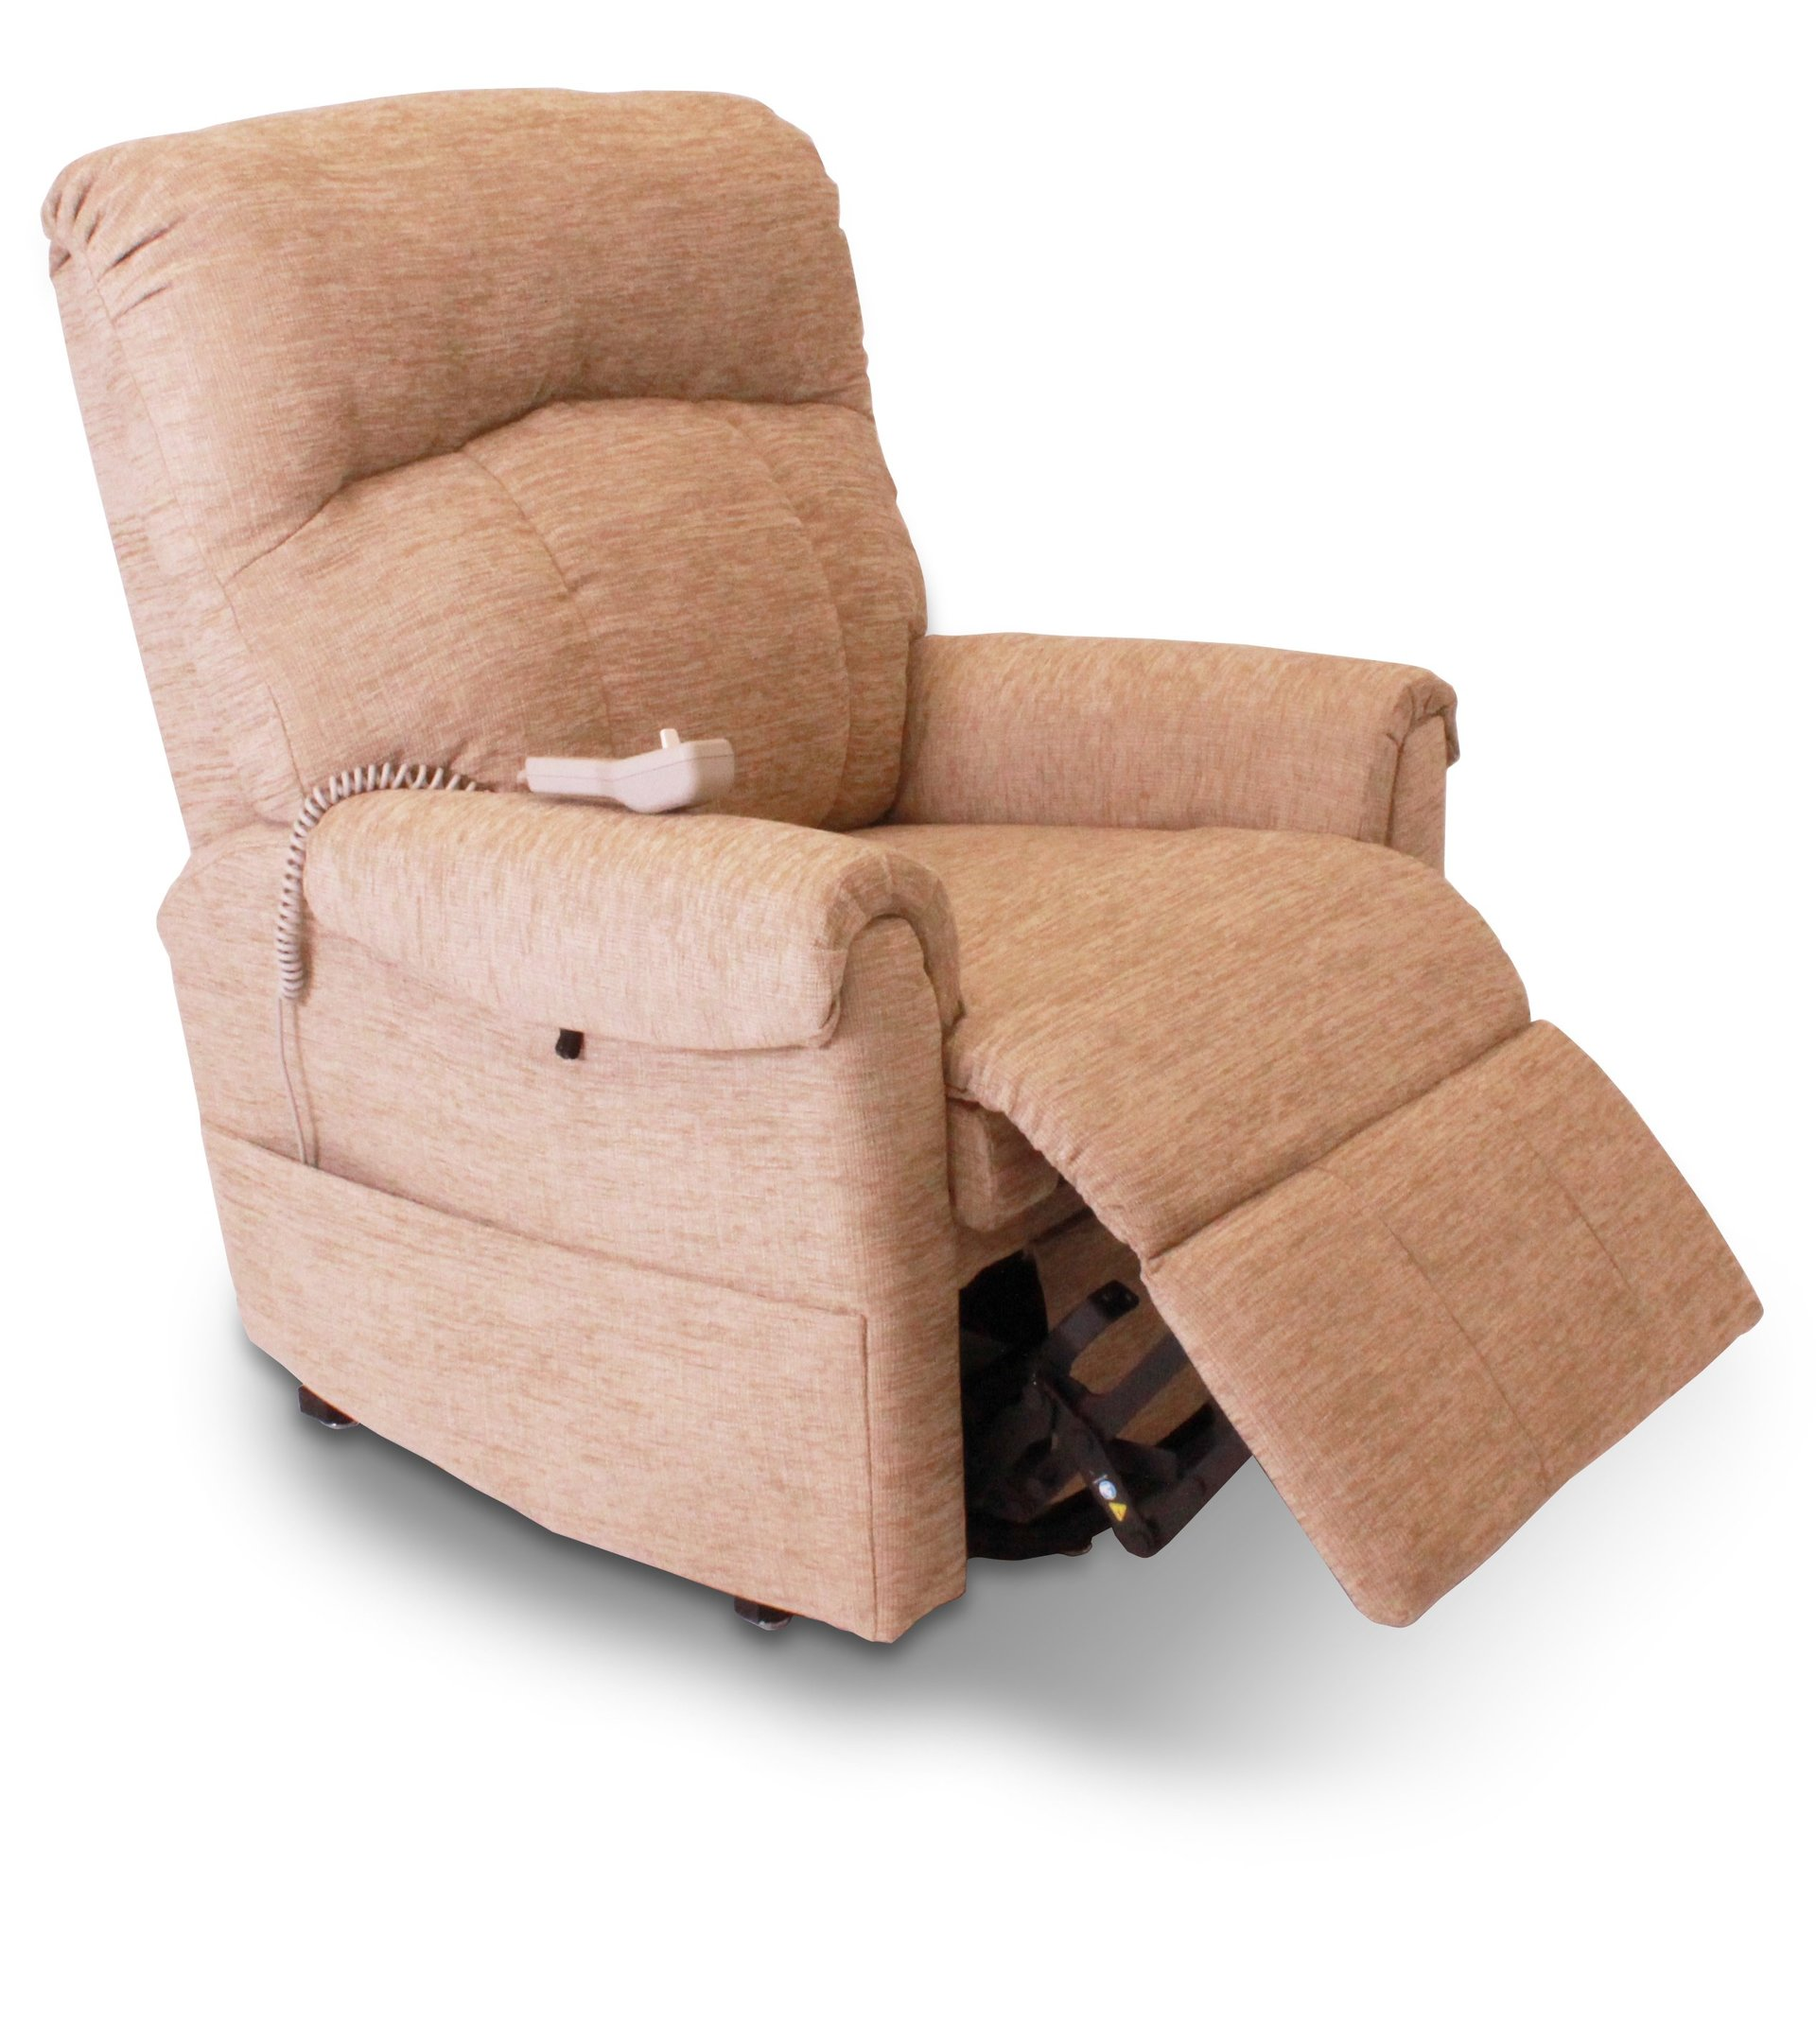 wendy wallhugger riser recliner